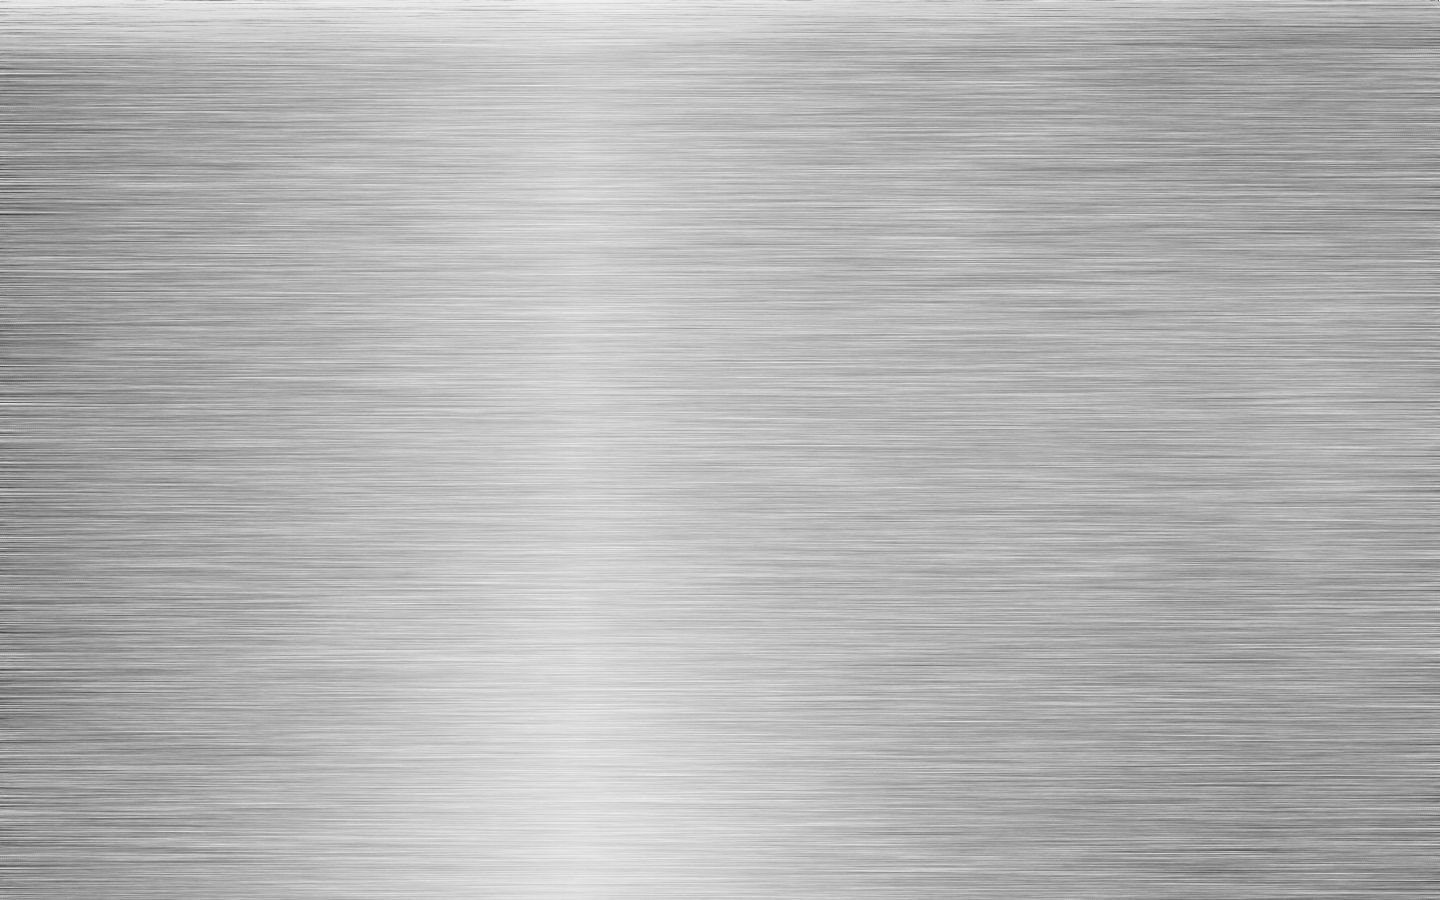 Brushed Metal Stainless Steel Texture Brushed Metal Brushed Aluminum